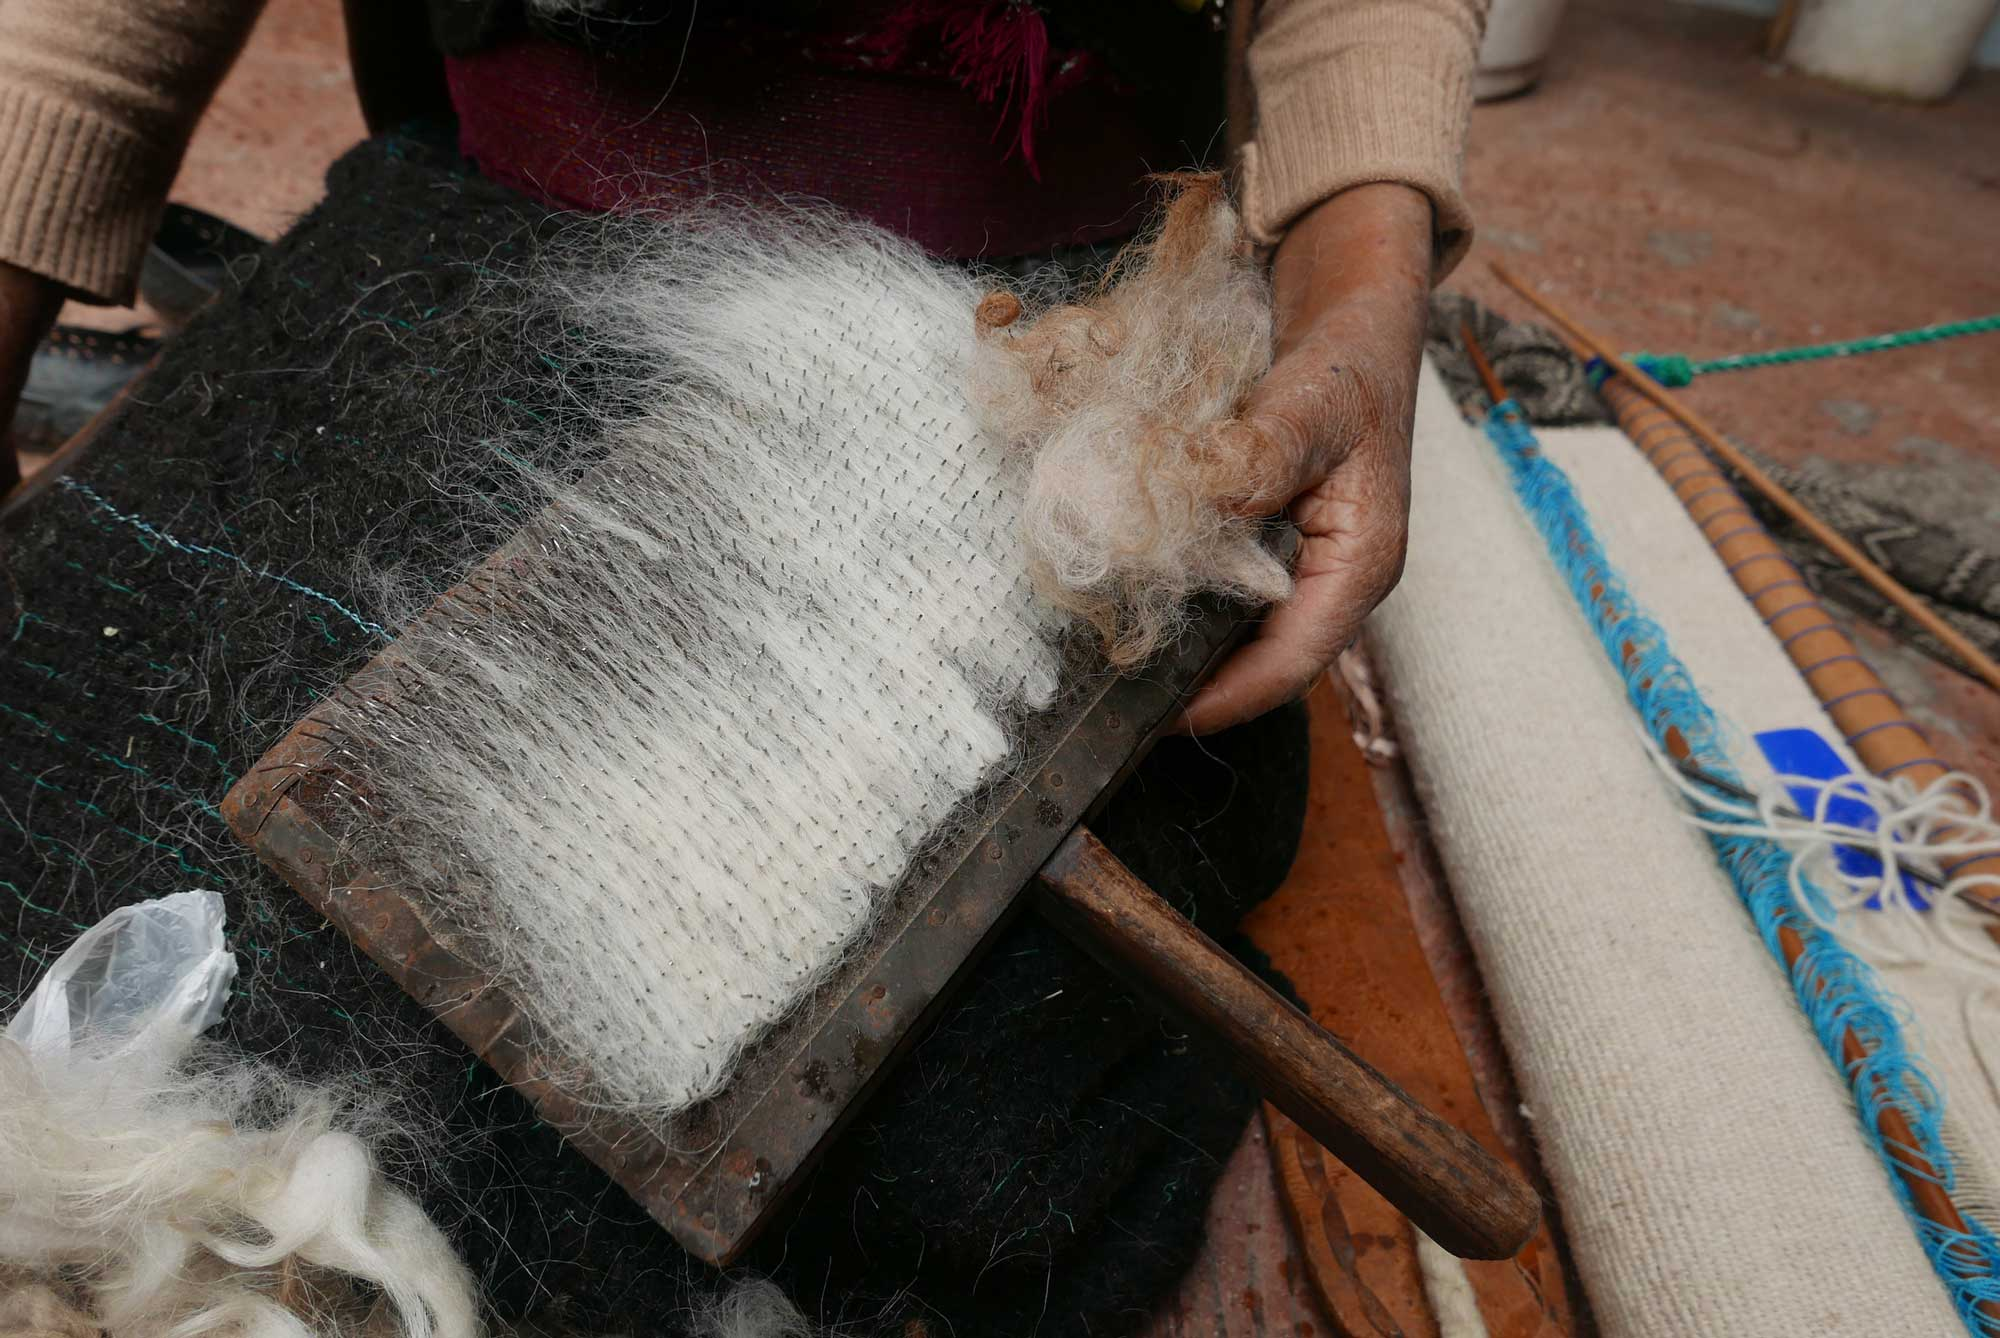 Artisan Backstrap Weaving Wool Textiles Chiapas Mexico